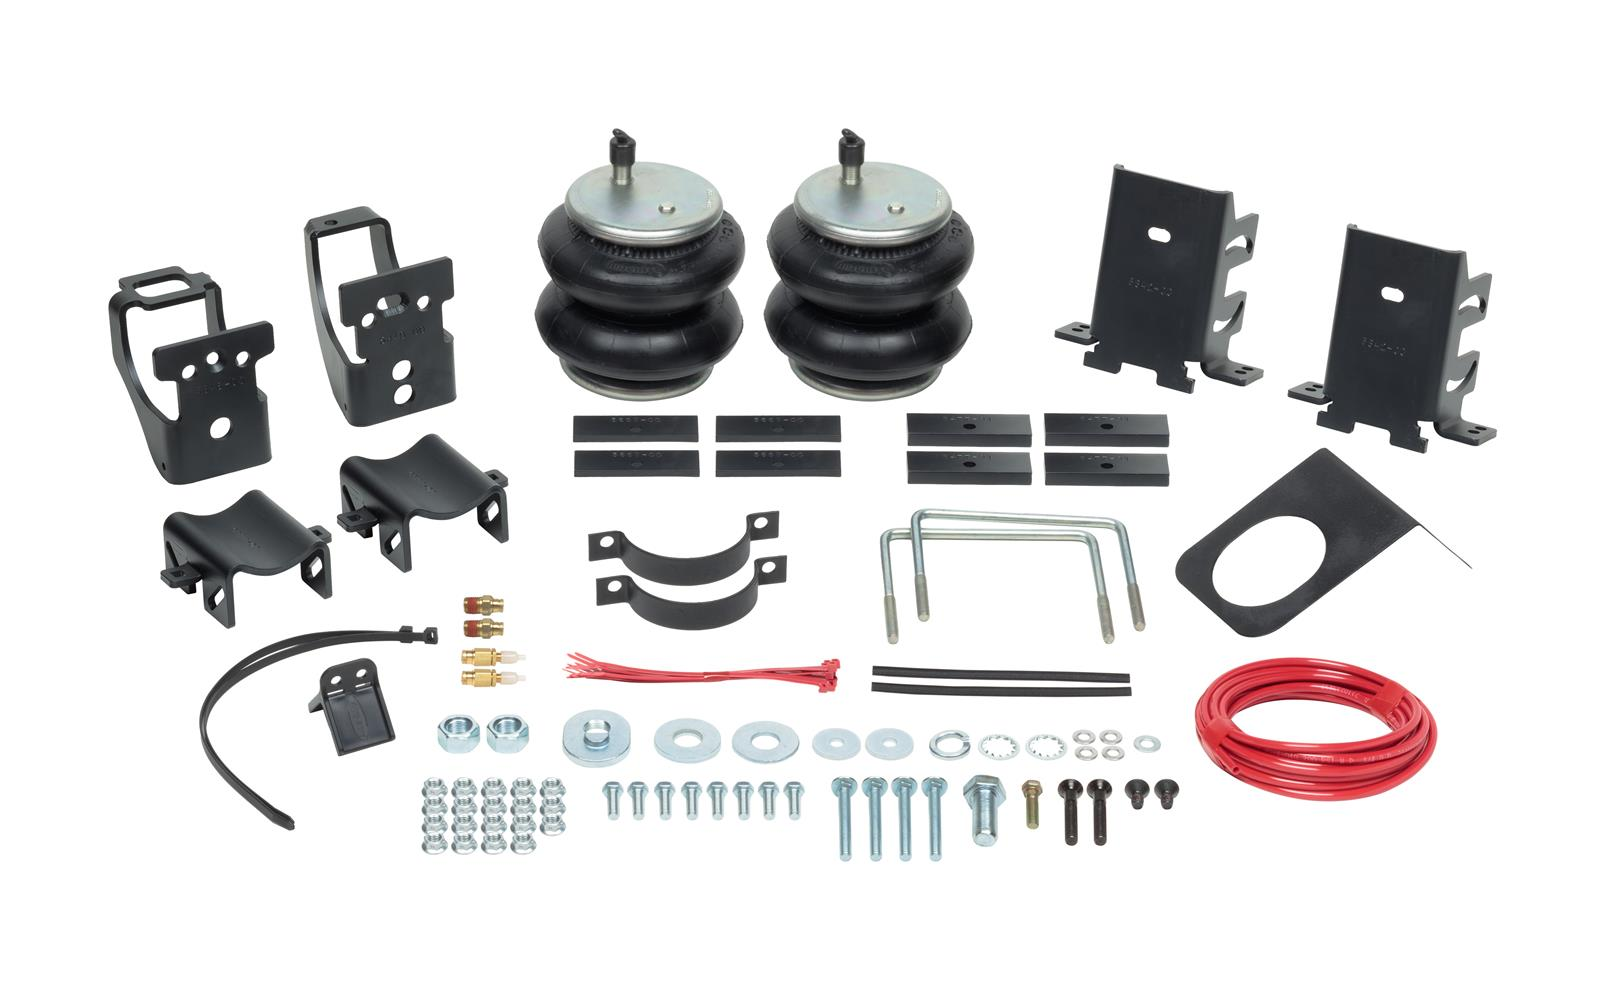 Firestone Ride-Rite Air Helper Spring Kits 2597 - Free Shipping on Orders  Over $99 at Summit Racing